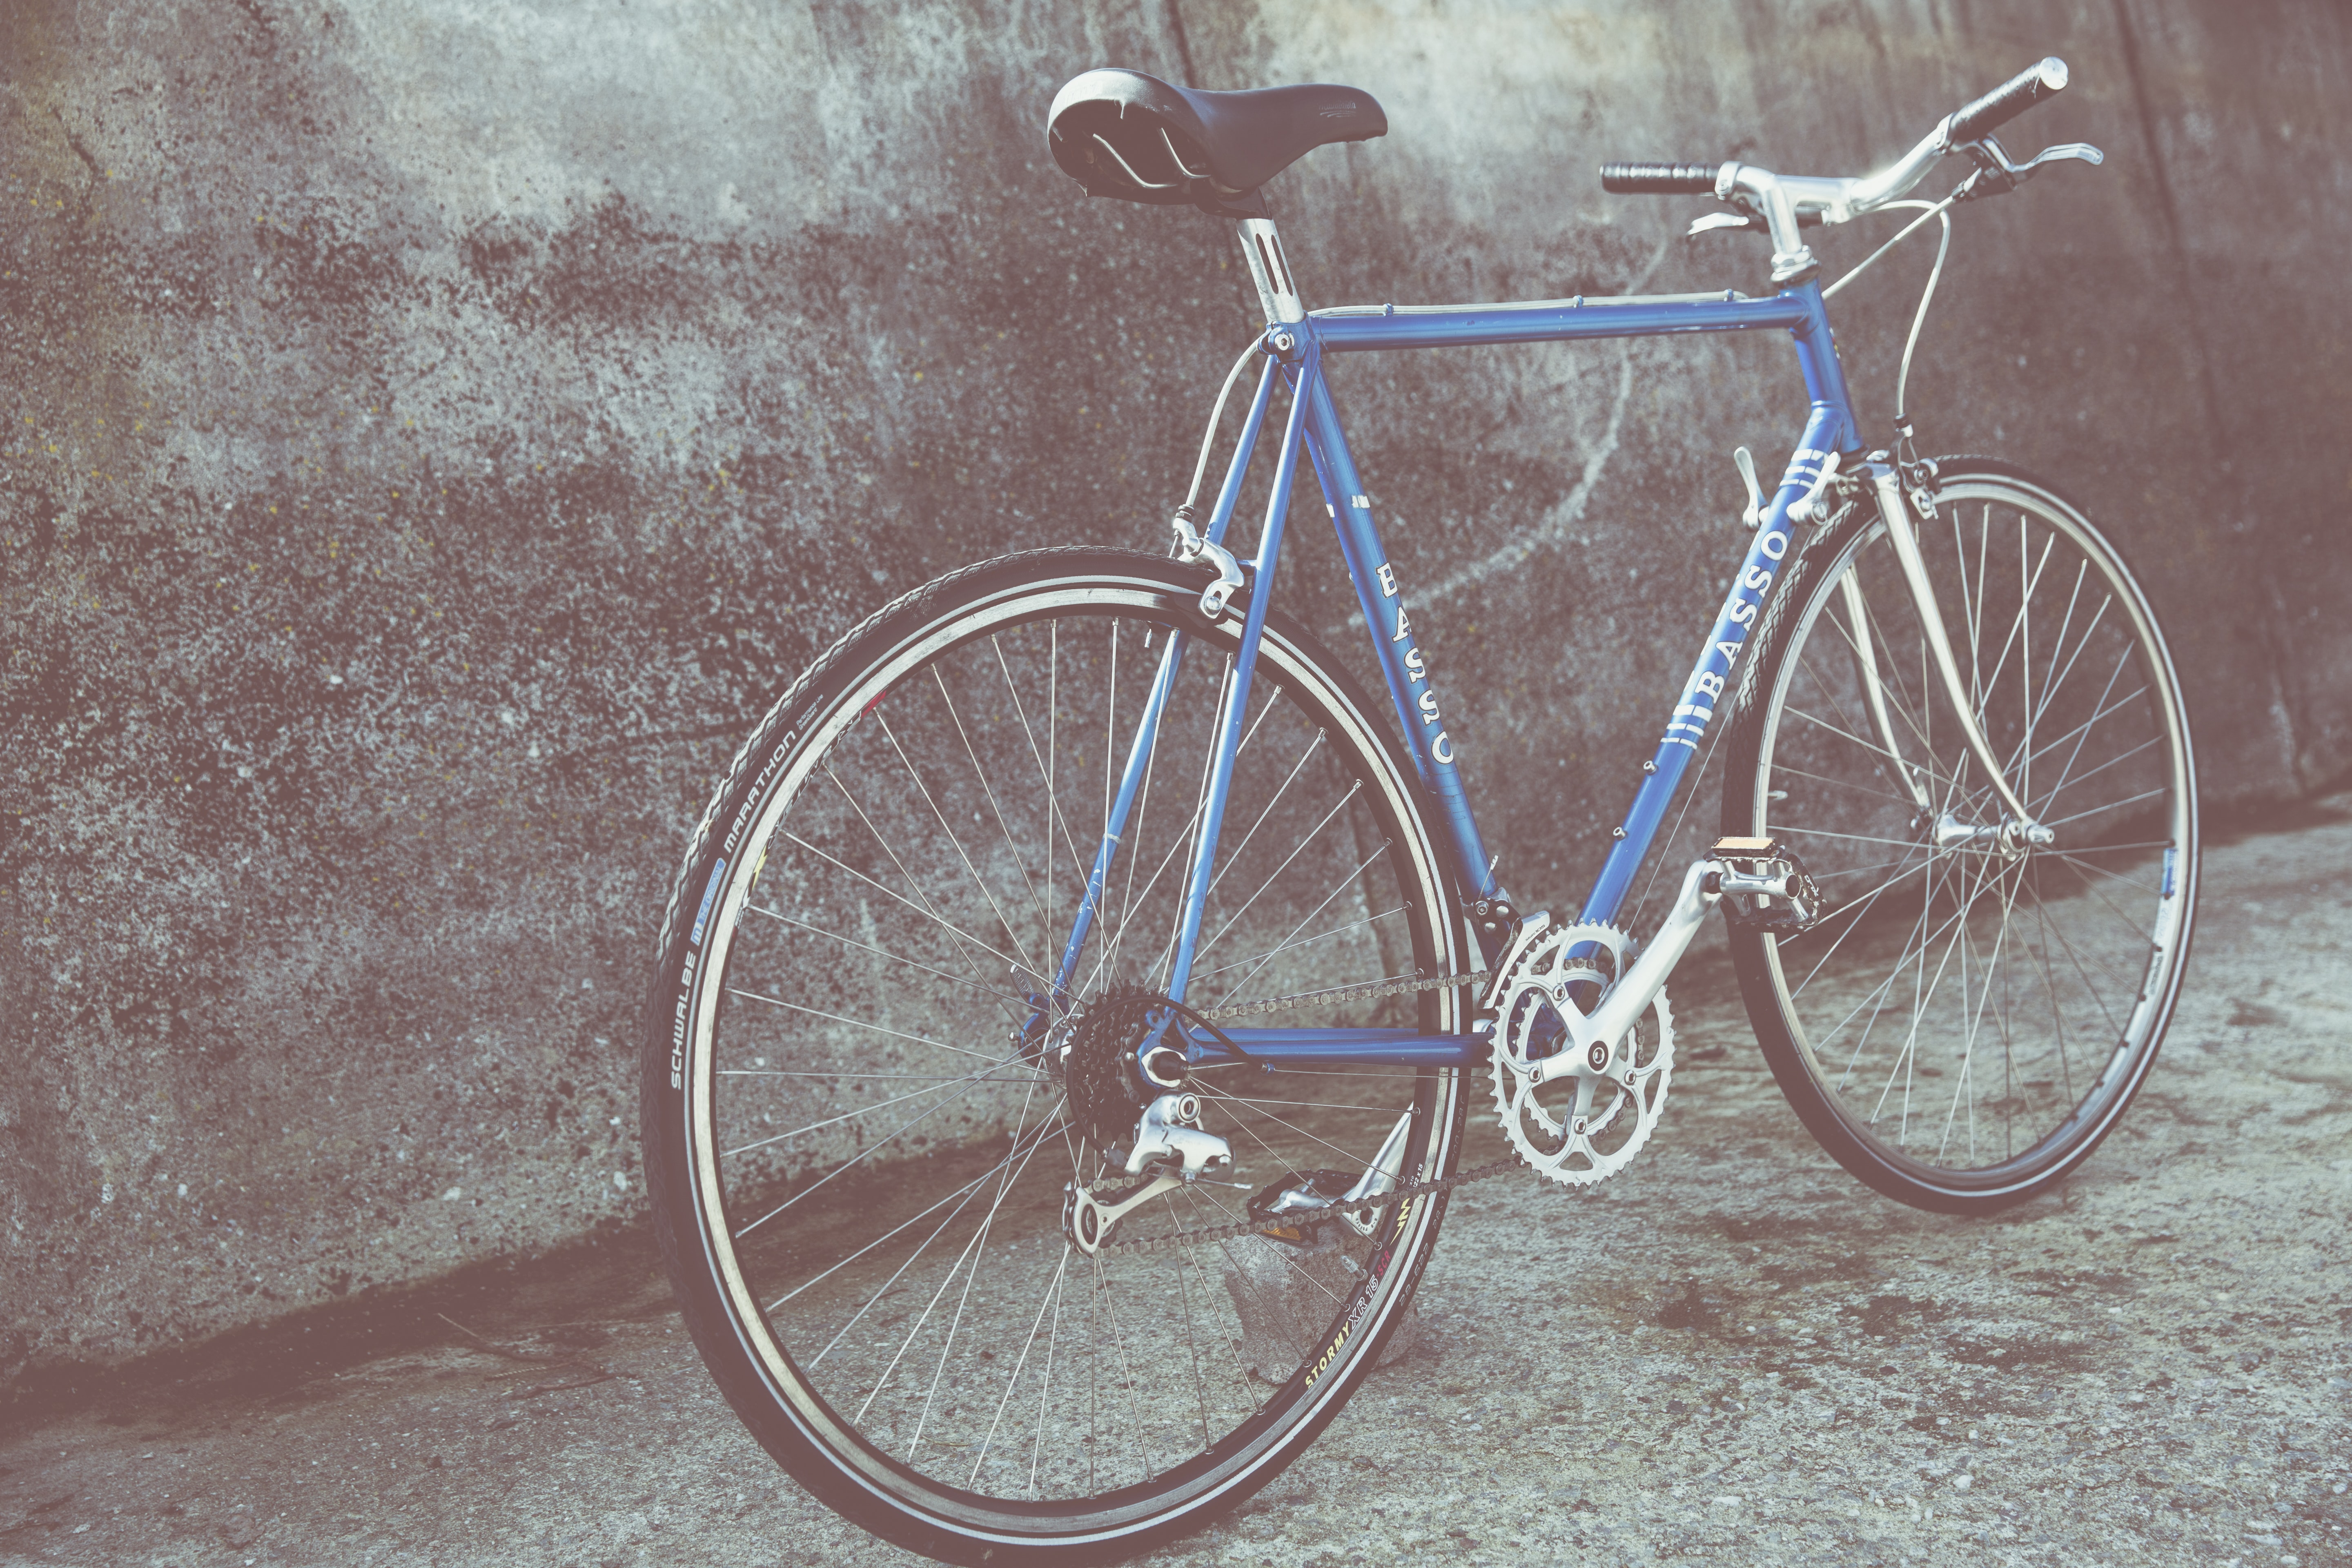 blue and gray rigid bicycle parked beside wall